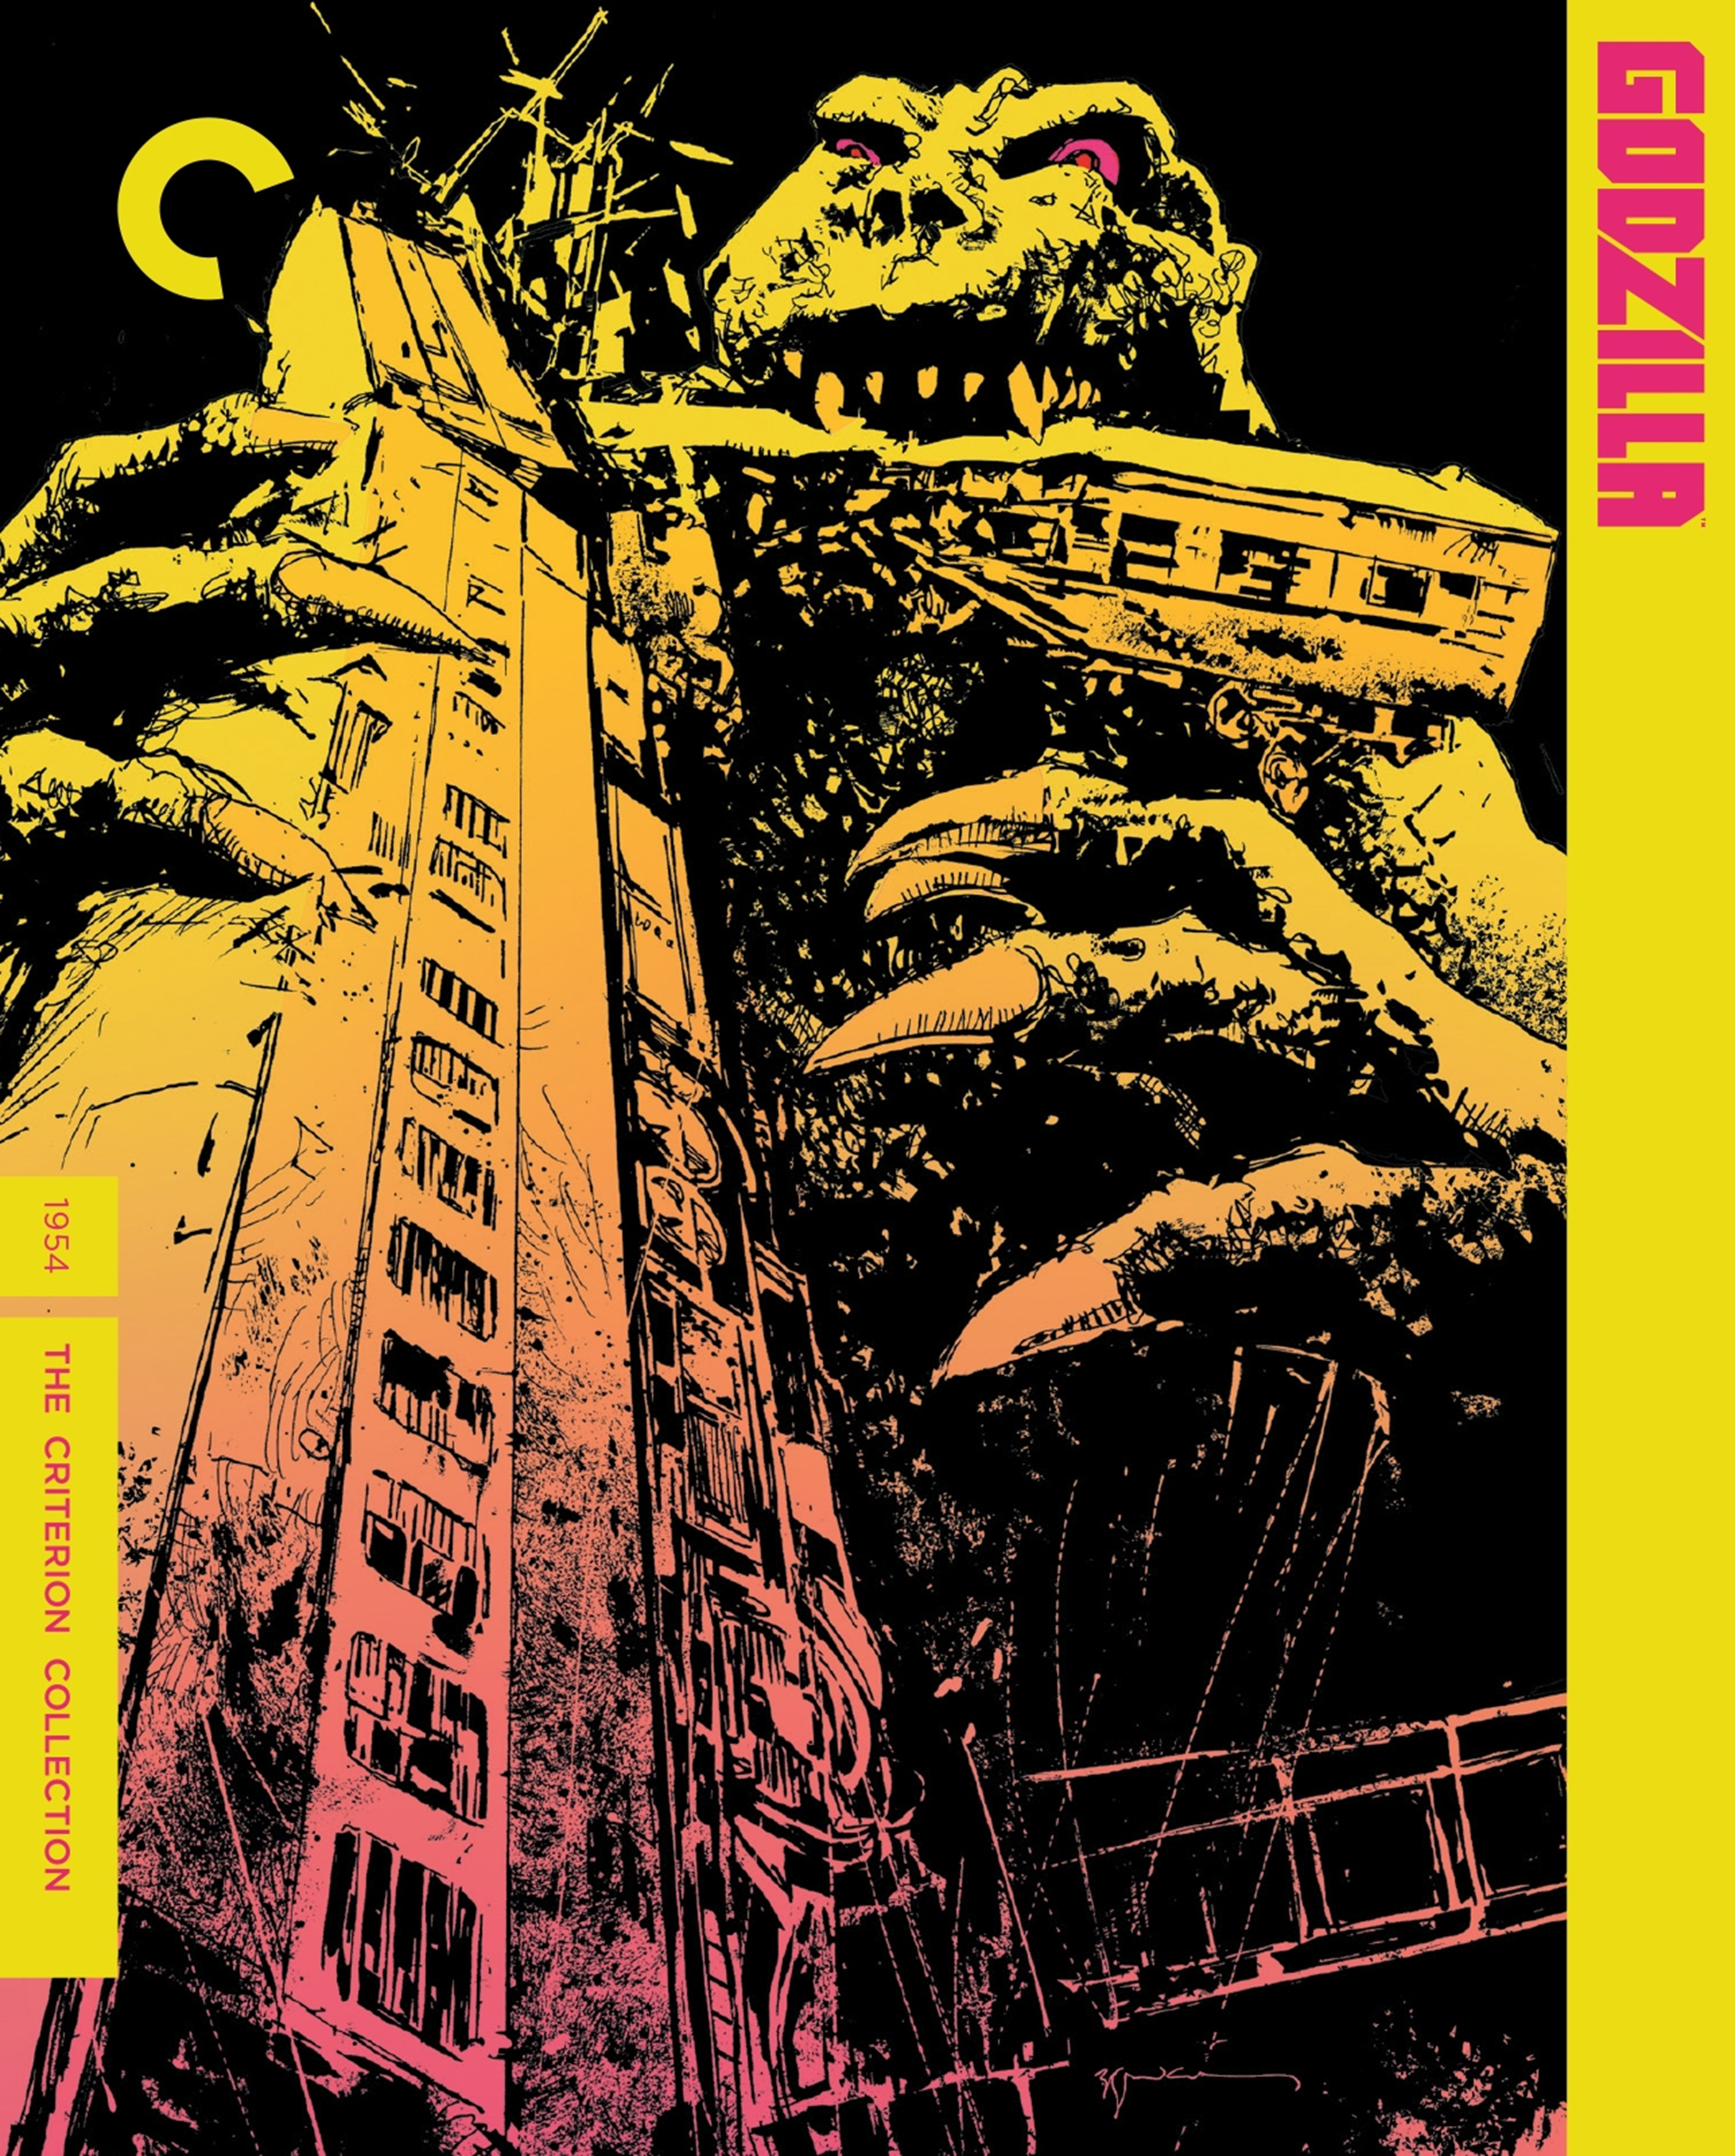 Godzilla: The Showa Era Films 1954 - 1975 Limited Edition - The Criterion Collection - 5